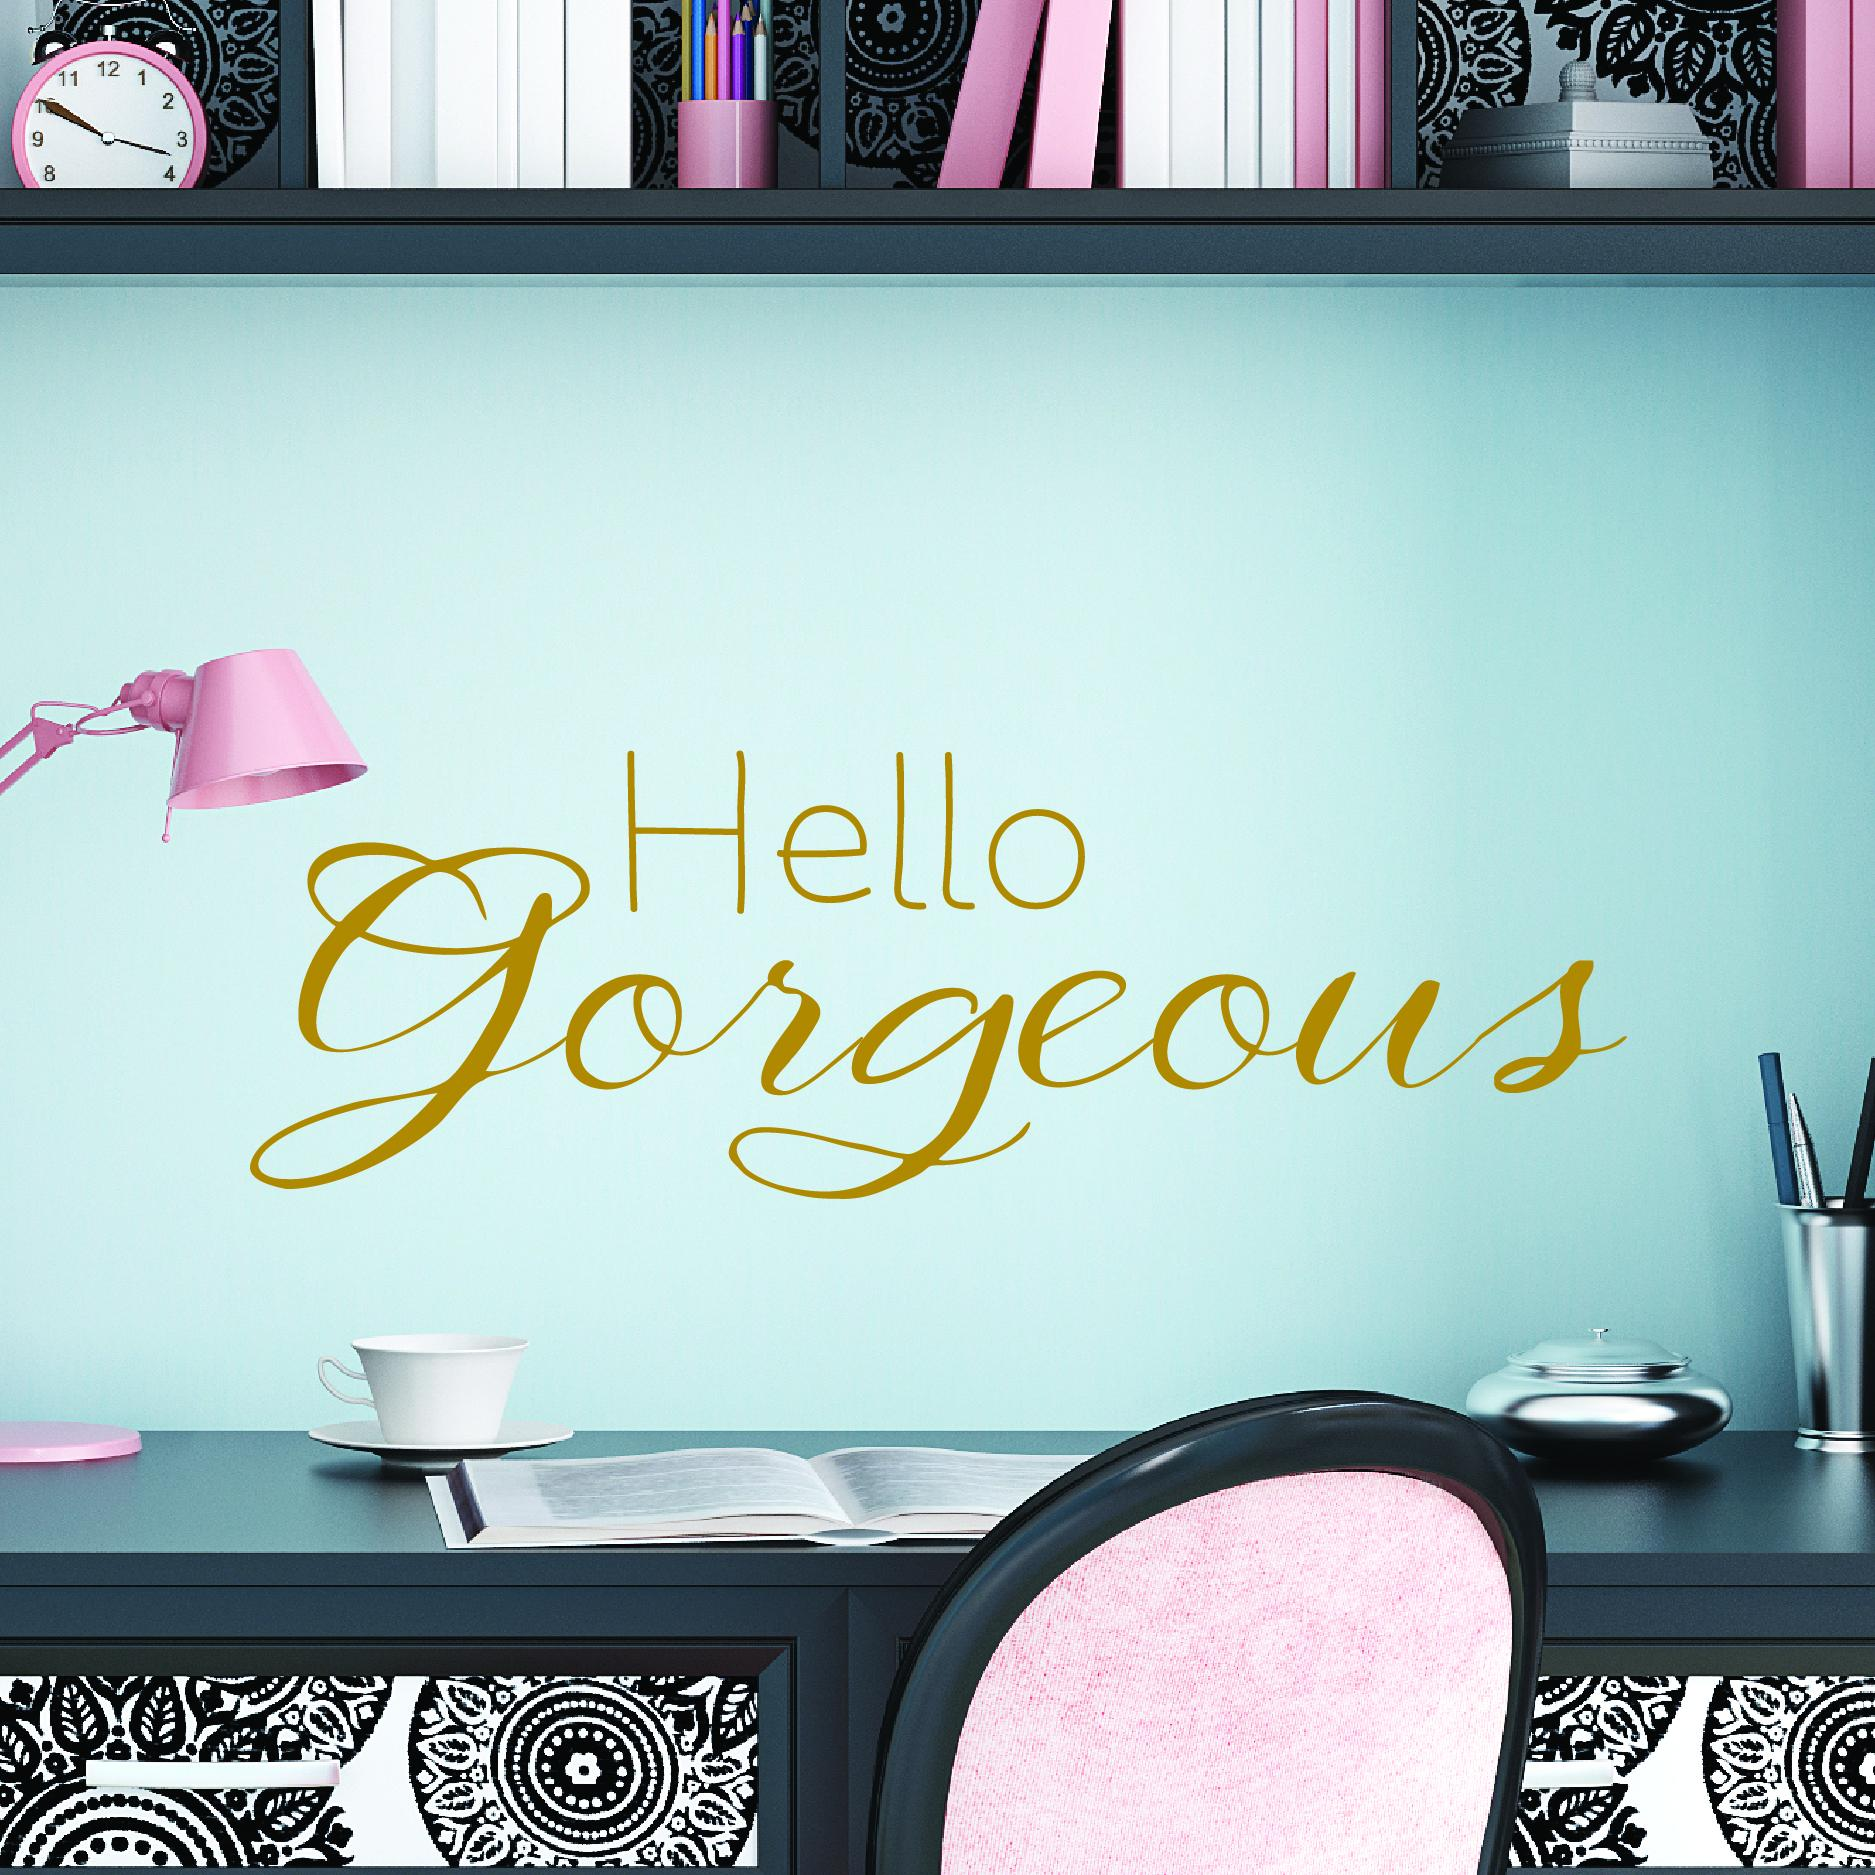 Hello Gorgeous Wall Quotes Decal Wallquotes Com